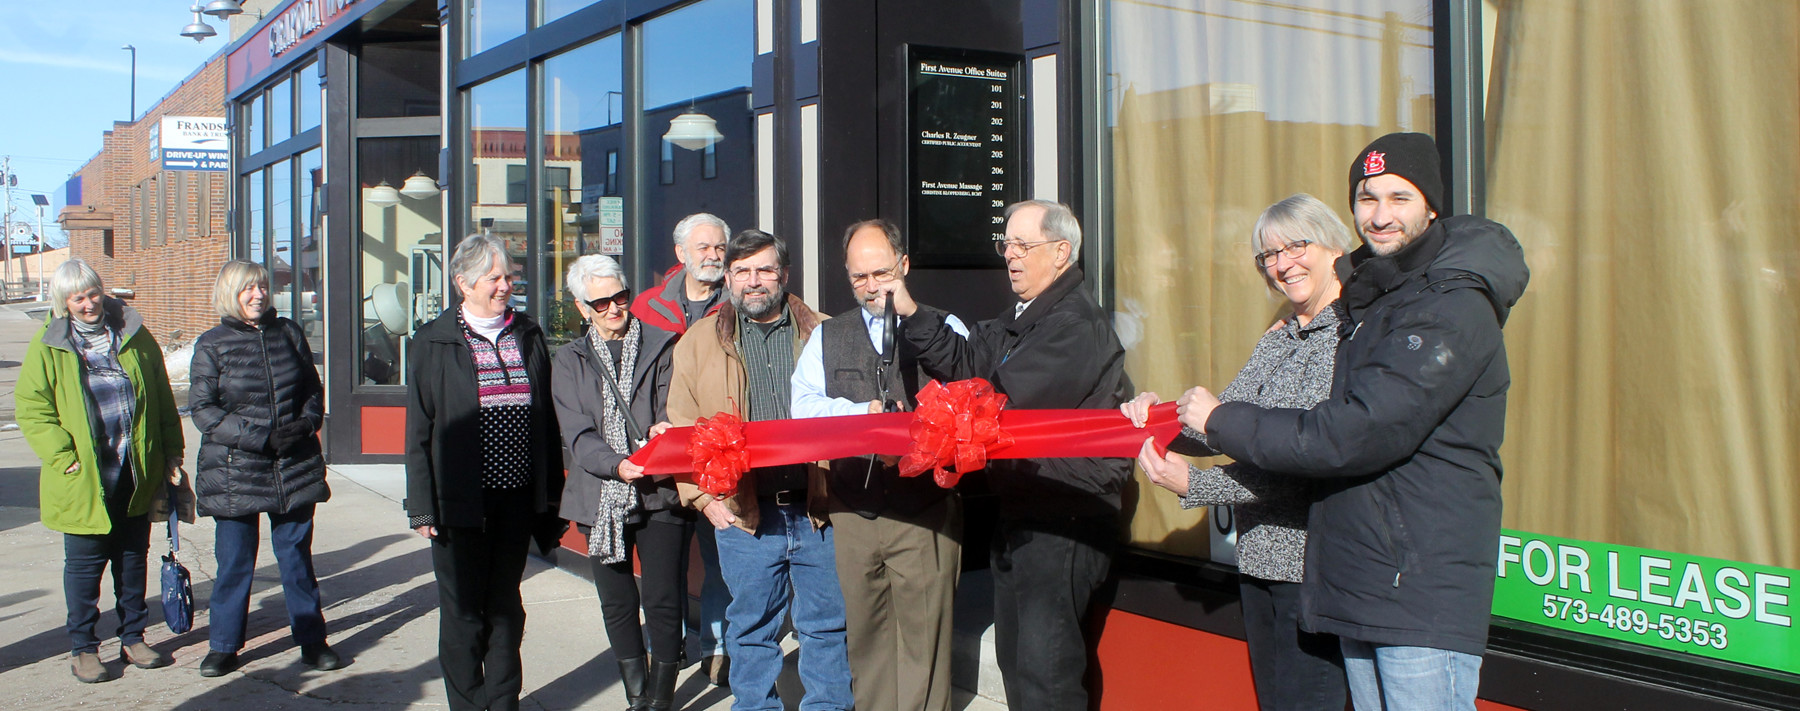 A ribbon-cutting celebration in front of the James Drug Building in downtown Ely was recently held for Chuck Zeugner's  new certified public accounting business. The efforts of Alley A Realty, including Tanner Ott, shown far right, and his father, John, are at the forefront of an economic develpment renaissance in the community. photo by K. Vandervort